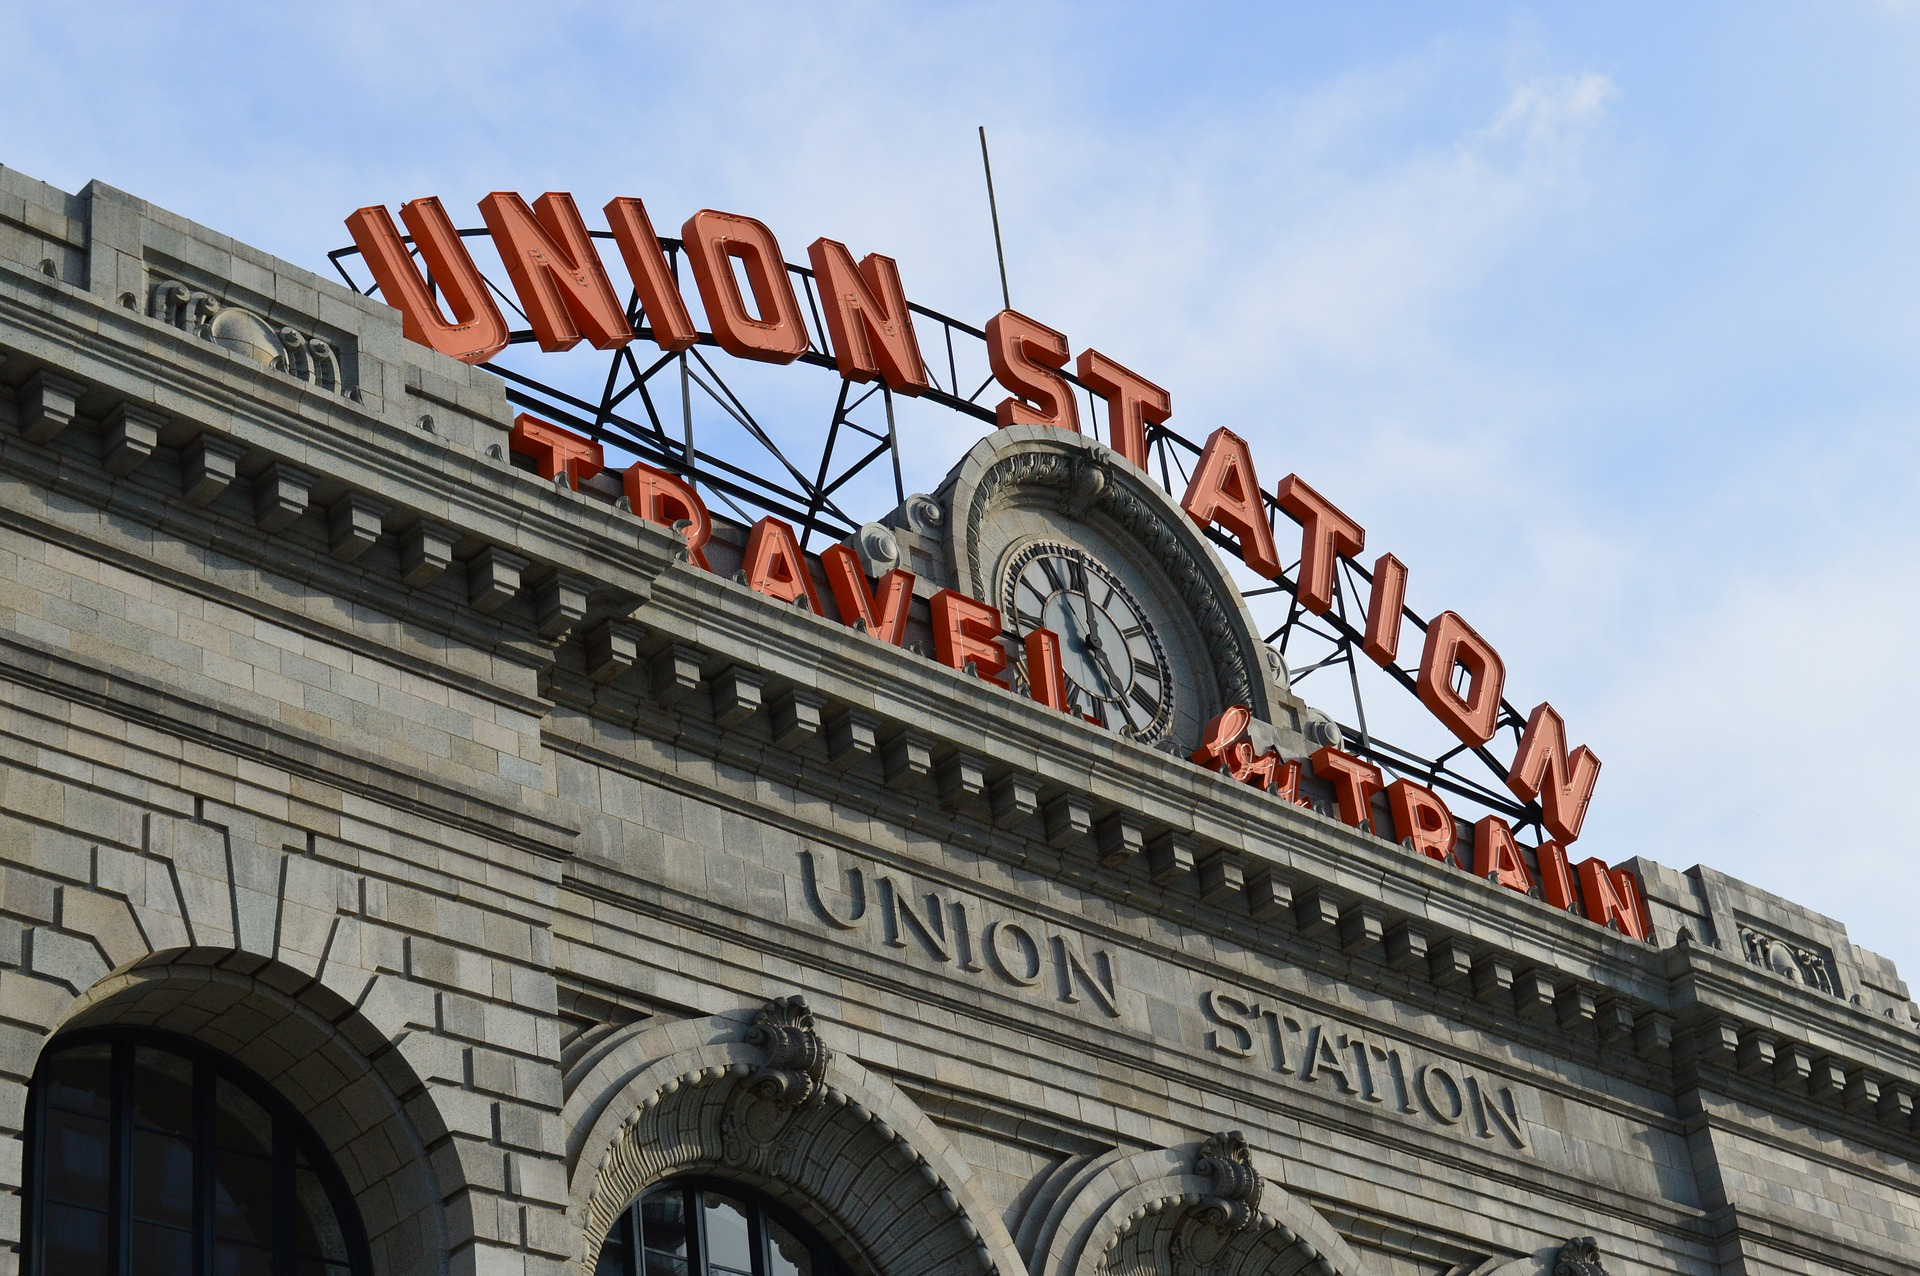 The New York Times features Denver's Union Station